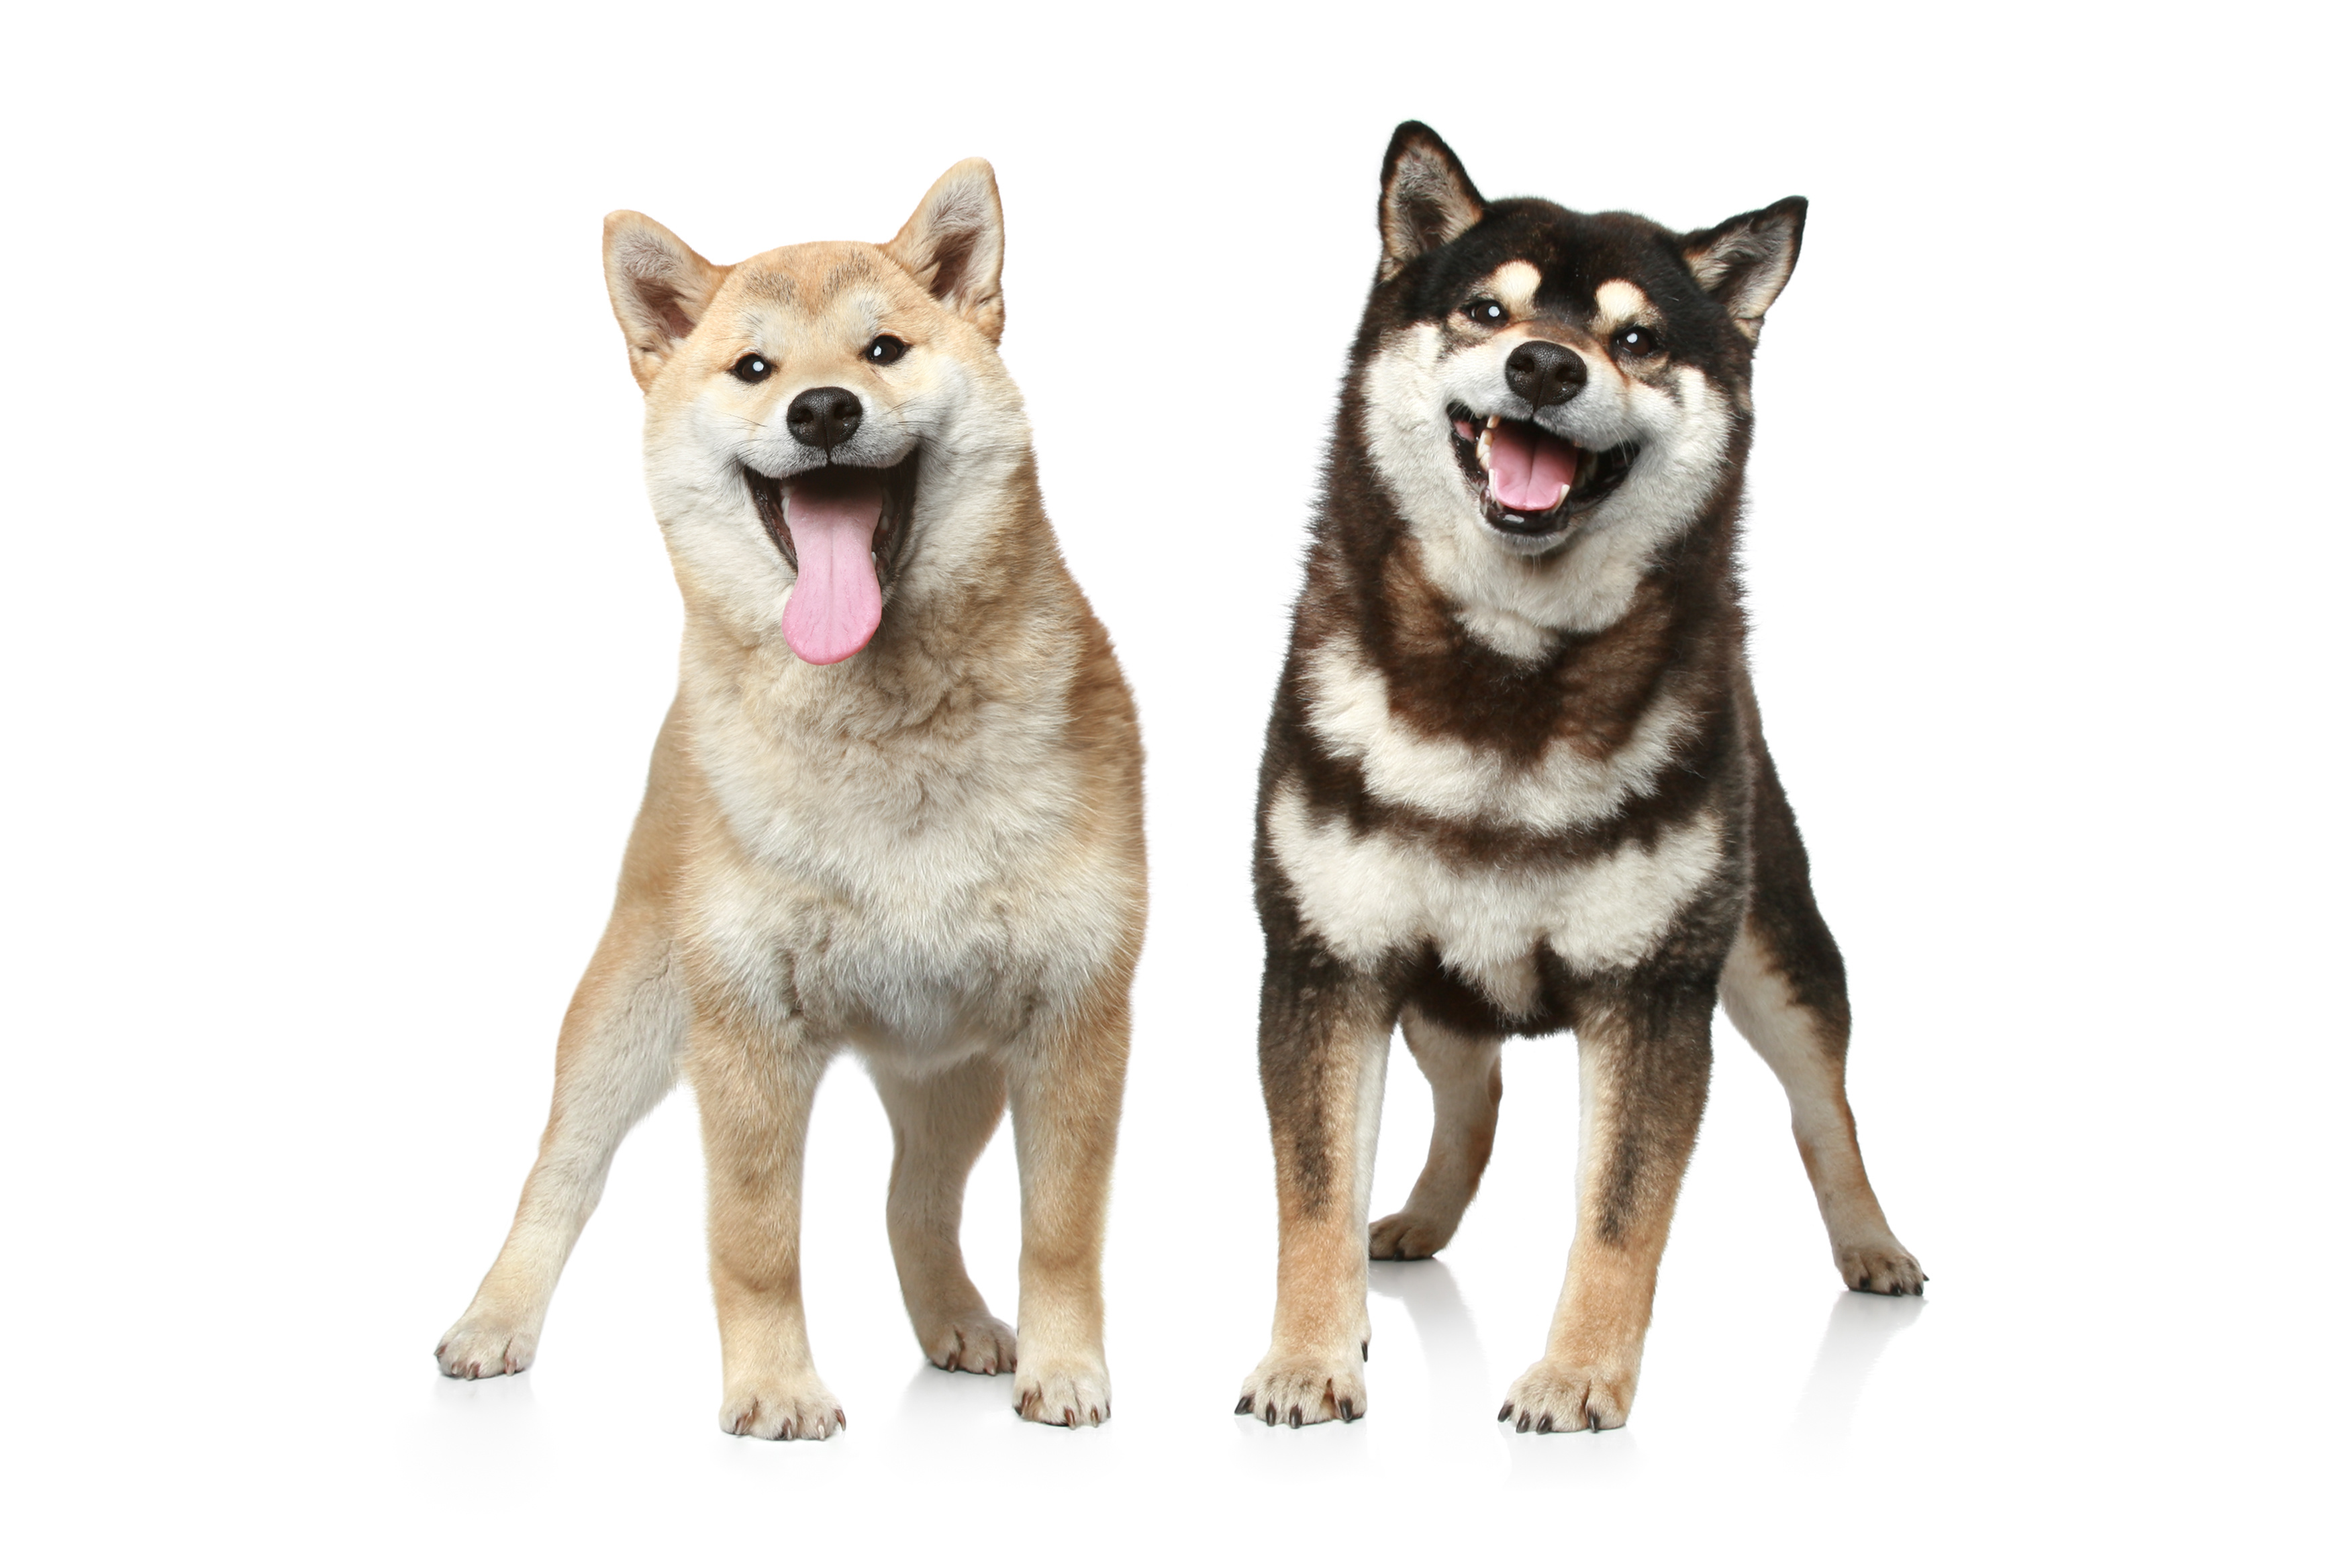 Two Shiba Inu dogs standing in front of a white background